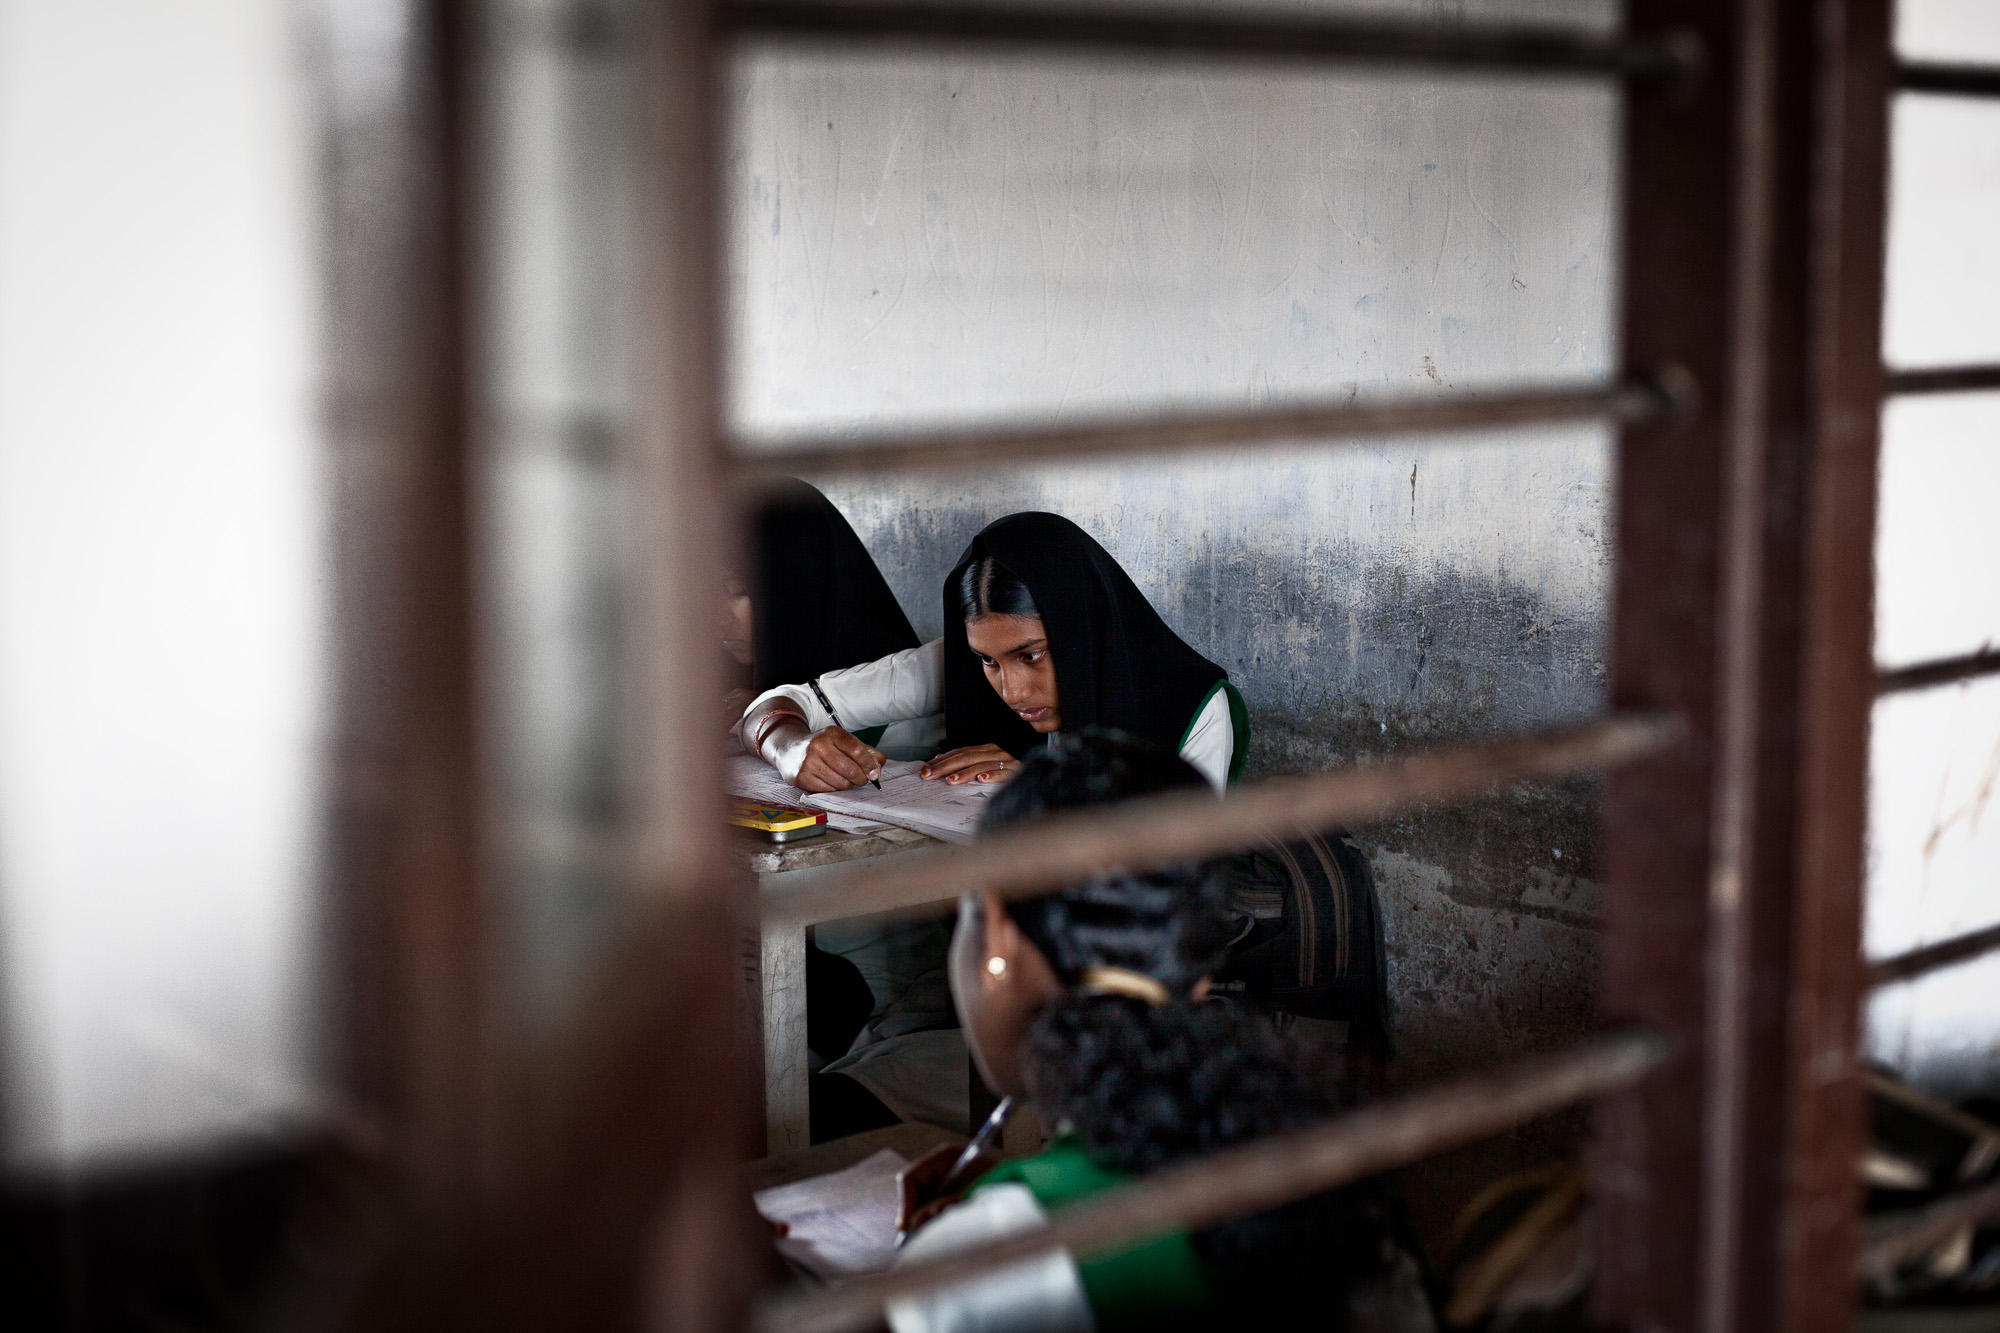 A girl from 10th standard takes an exam in her classroom at the Roman Catholic High School.  The estate provides scholarships for those over the age of 14 to remain in school and obtain a good education. Additional incentives are provided for girls such as giving them bicycles, and other school accessories.  Historically Muslim girls tended not to extend their education after this age, however these improvements have enabled this group to remain in education for longer and seek higher status employment.